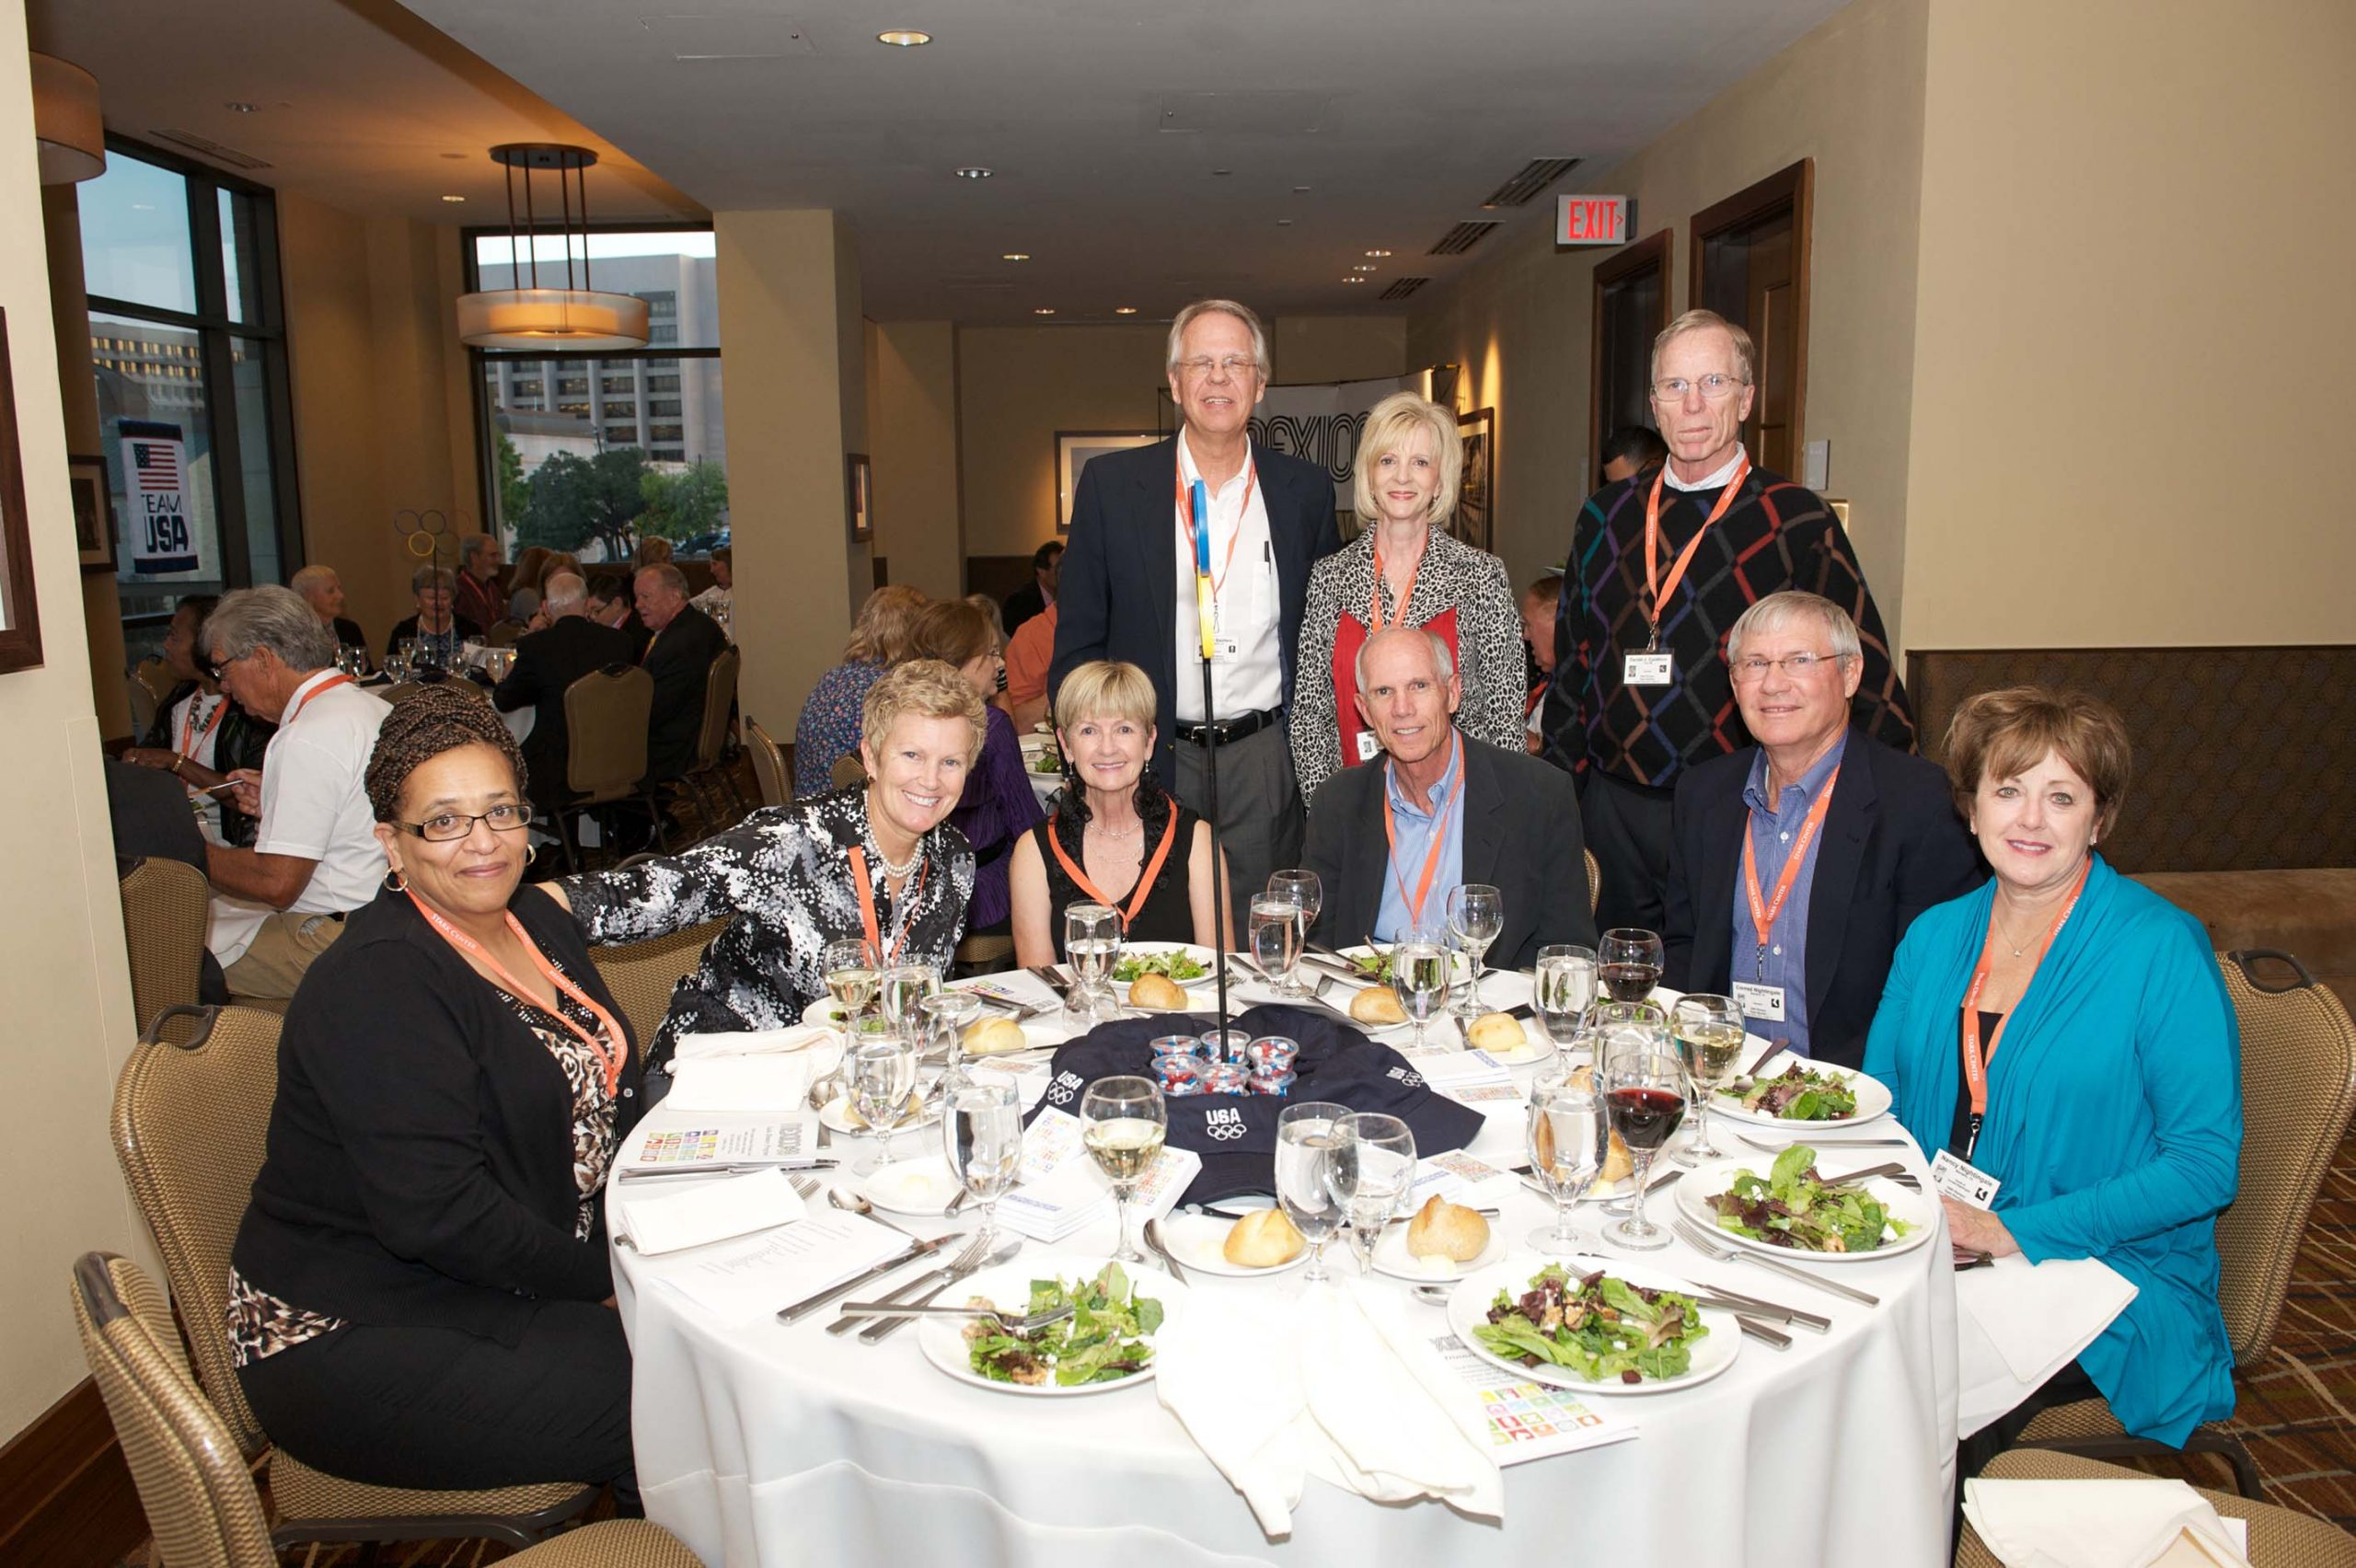 Sixteen people at two tables at the 1968 U.S. Olympic Team 2012 Reunion.